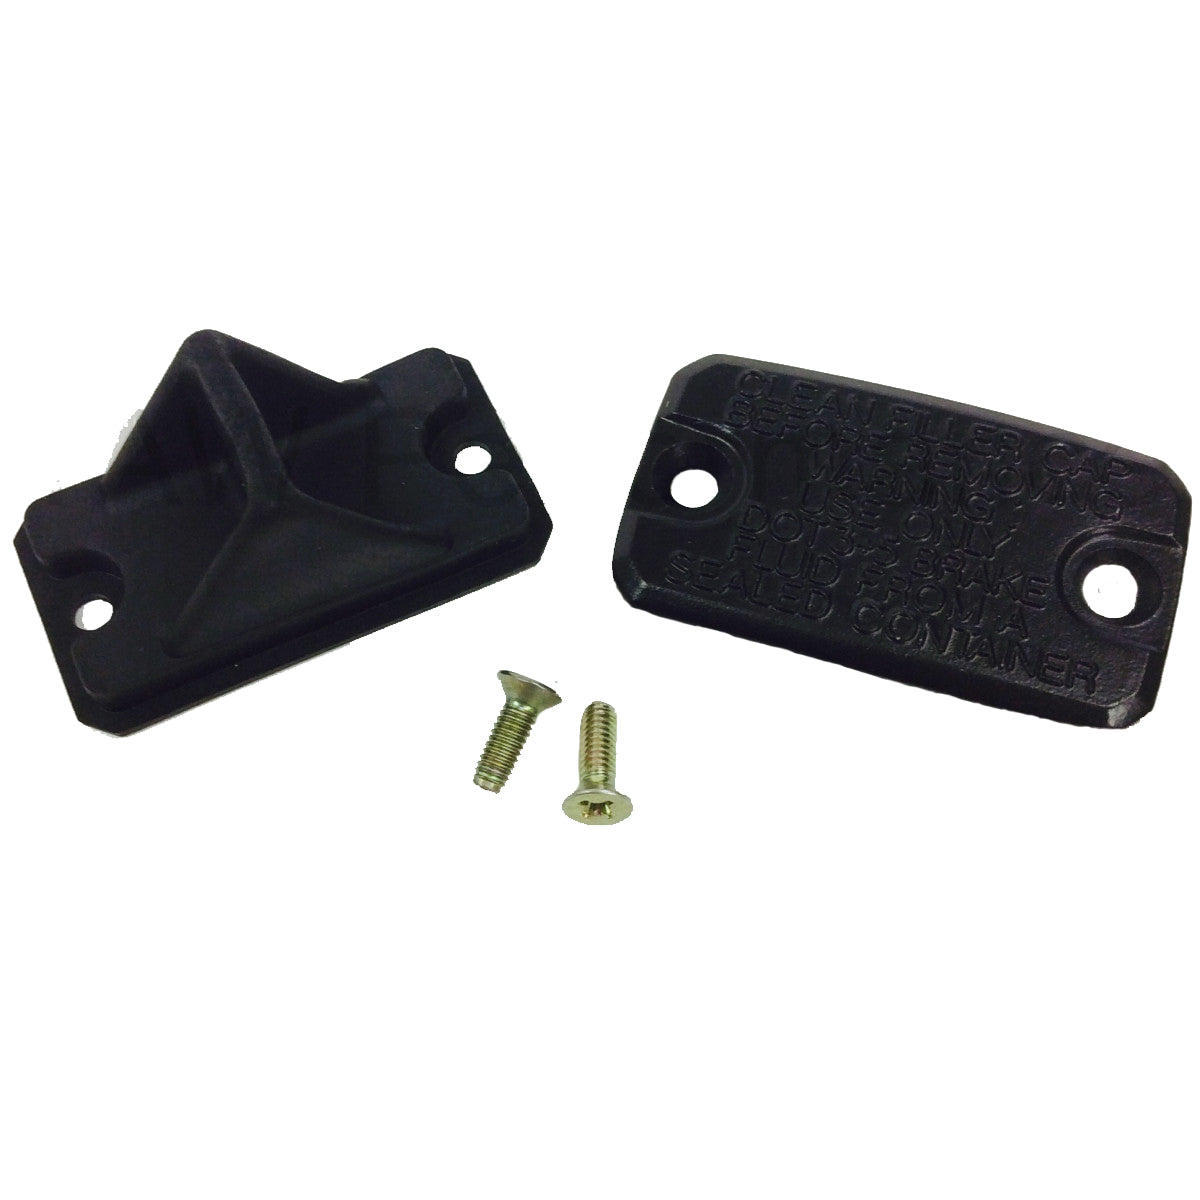 Brembo PS13 Reservoir Cap Kit - Tacticalmindz.com